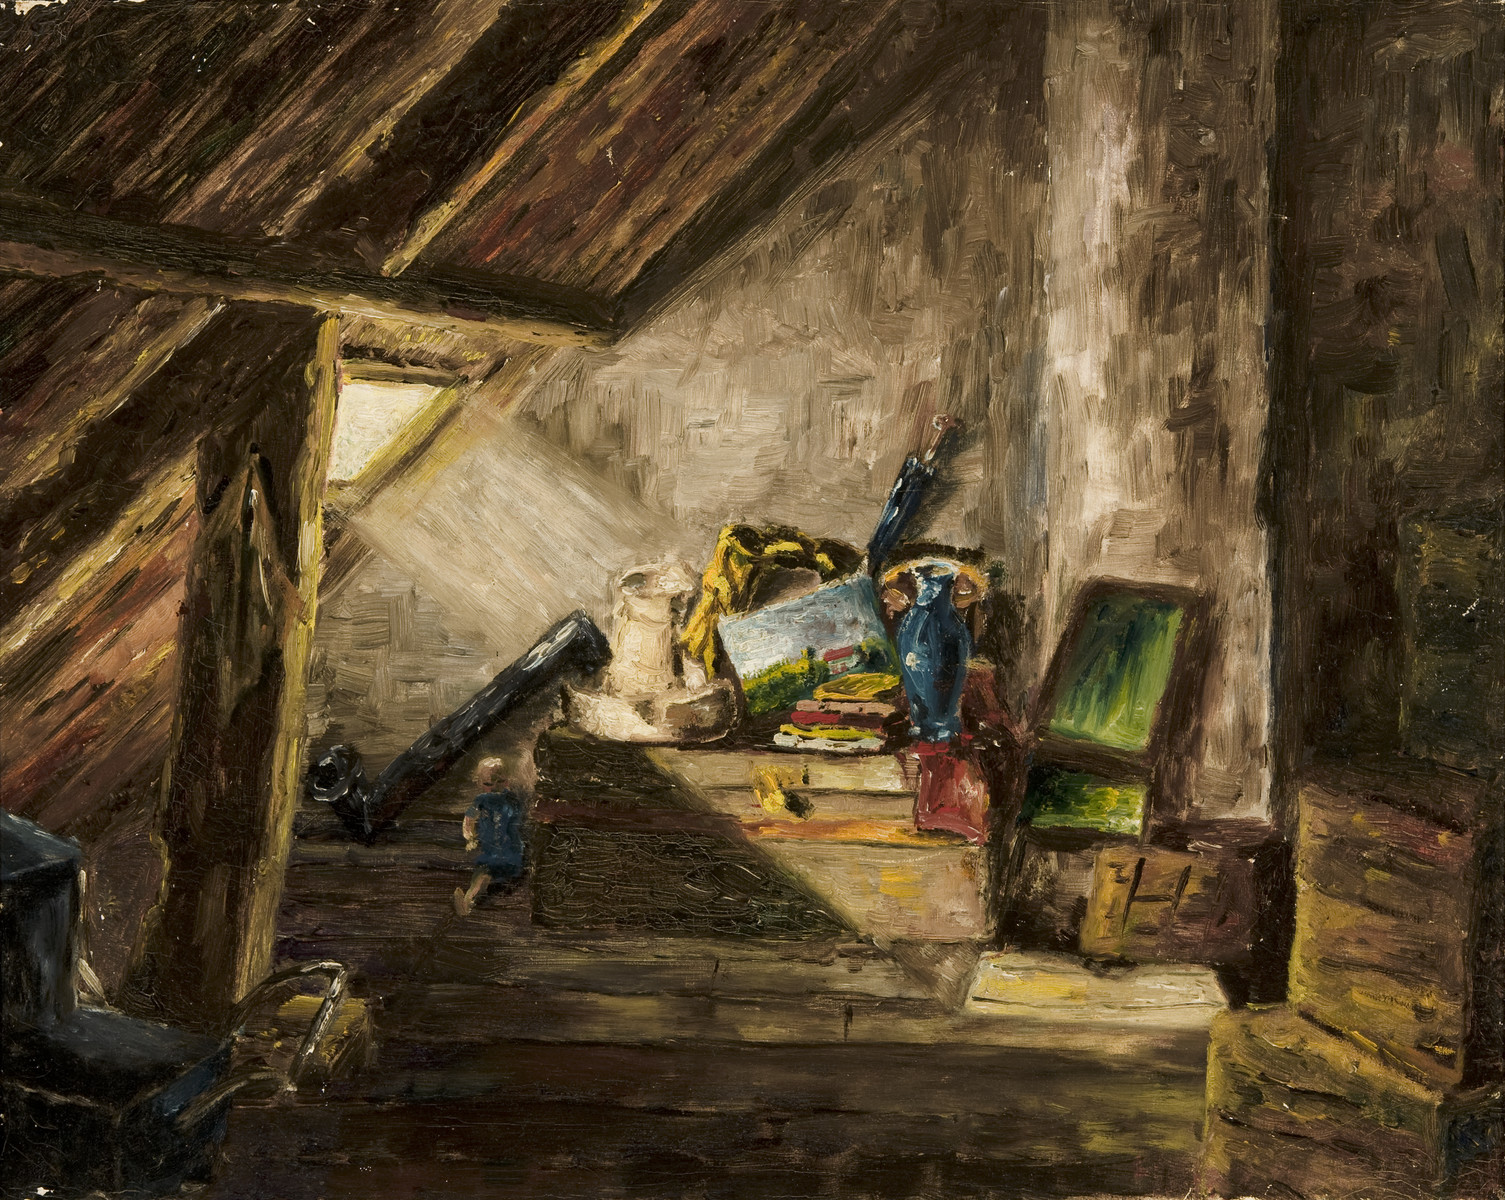 Painting of an attic view drawn by Heinz Geiringer, a Jewish teenager in Amsterdam, while in hiding to keep himself occupied.  The paintings were hidden under the floorboards of the hiding place and retrieved after the war.